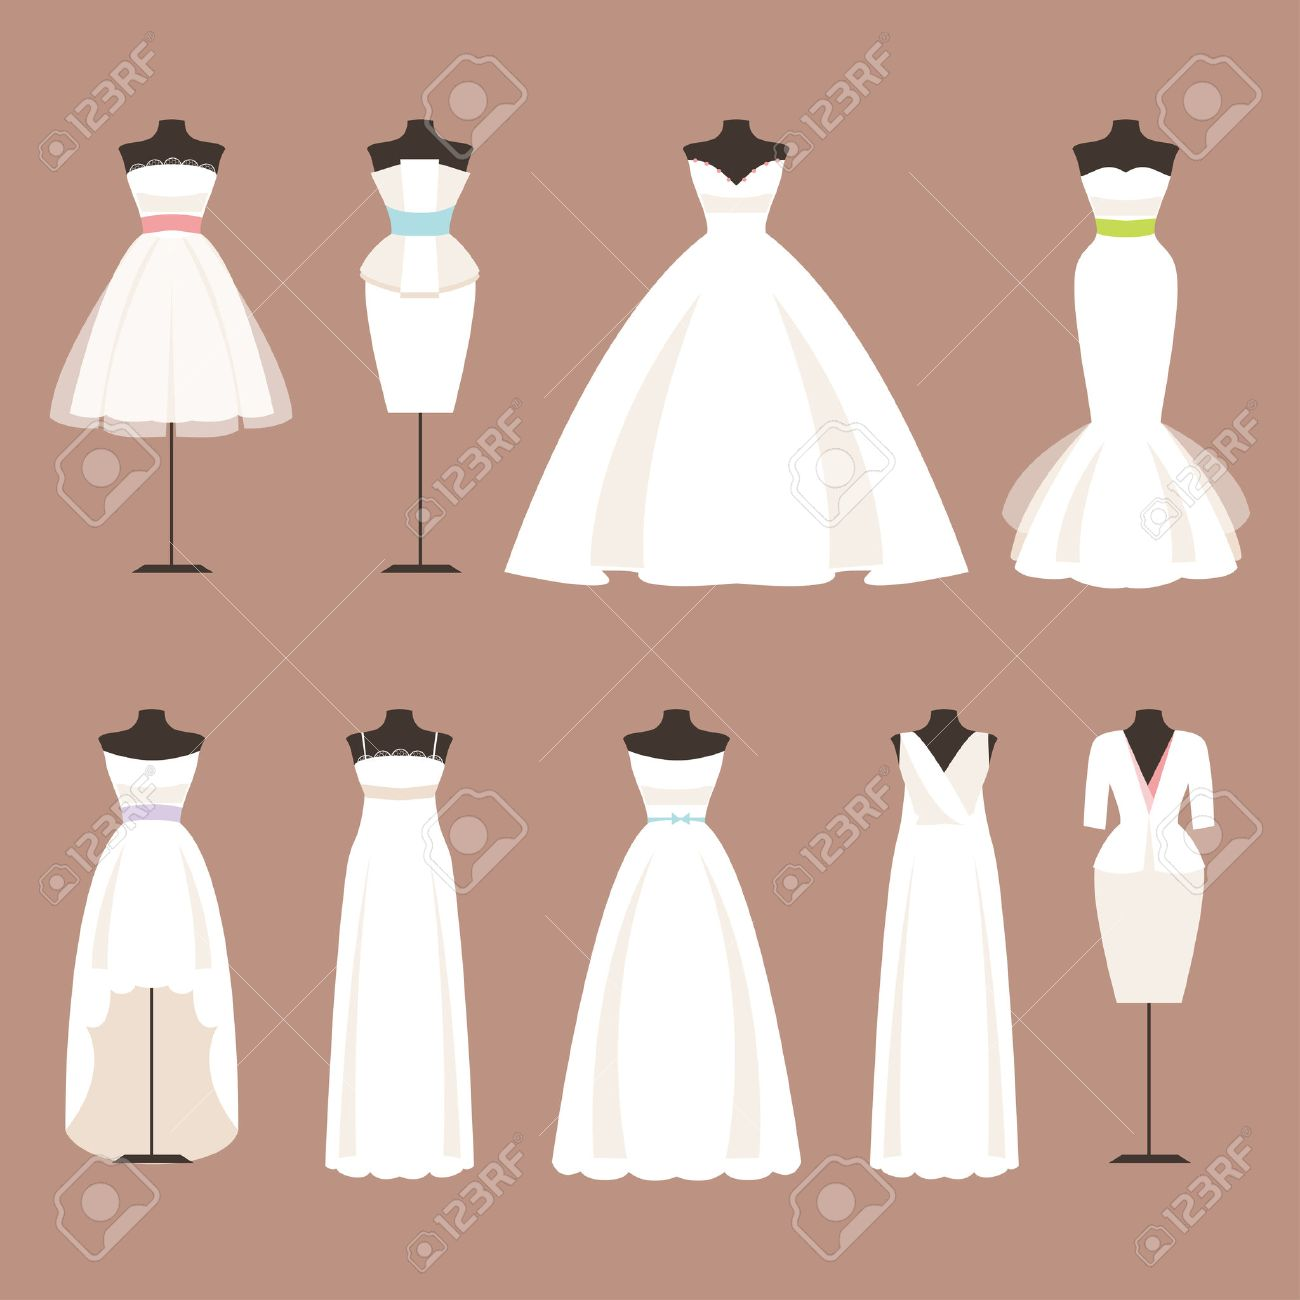 Different Styles Of Wedding Dresses On A Mannequin Royalty Free